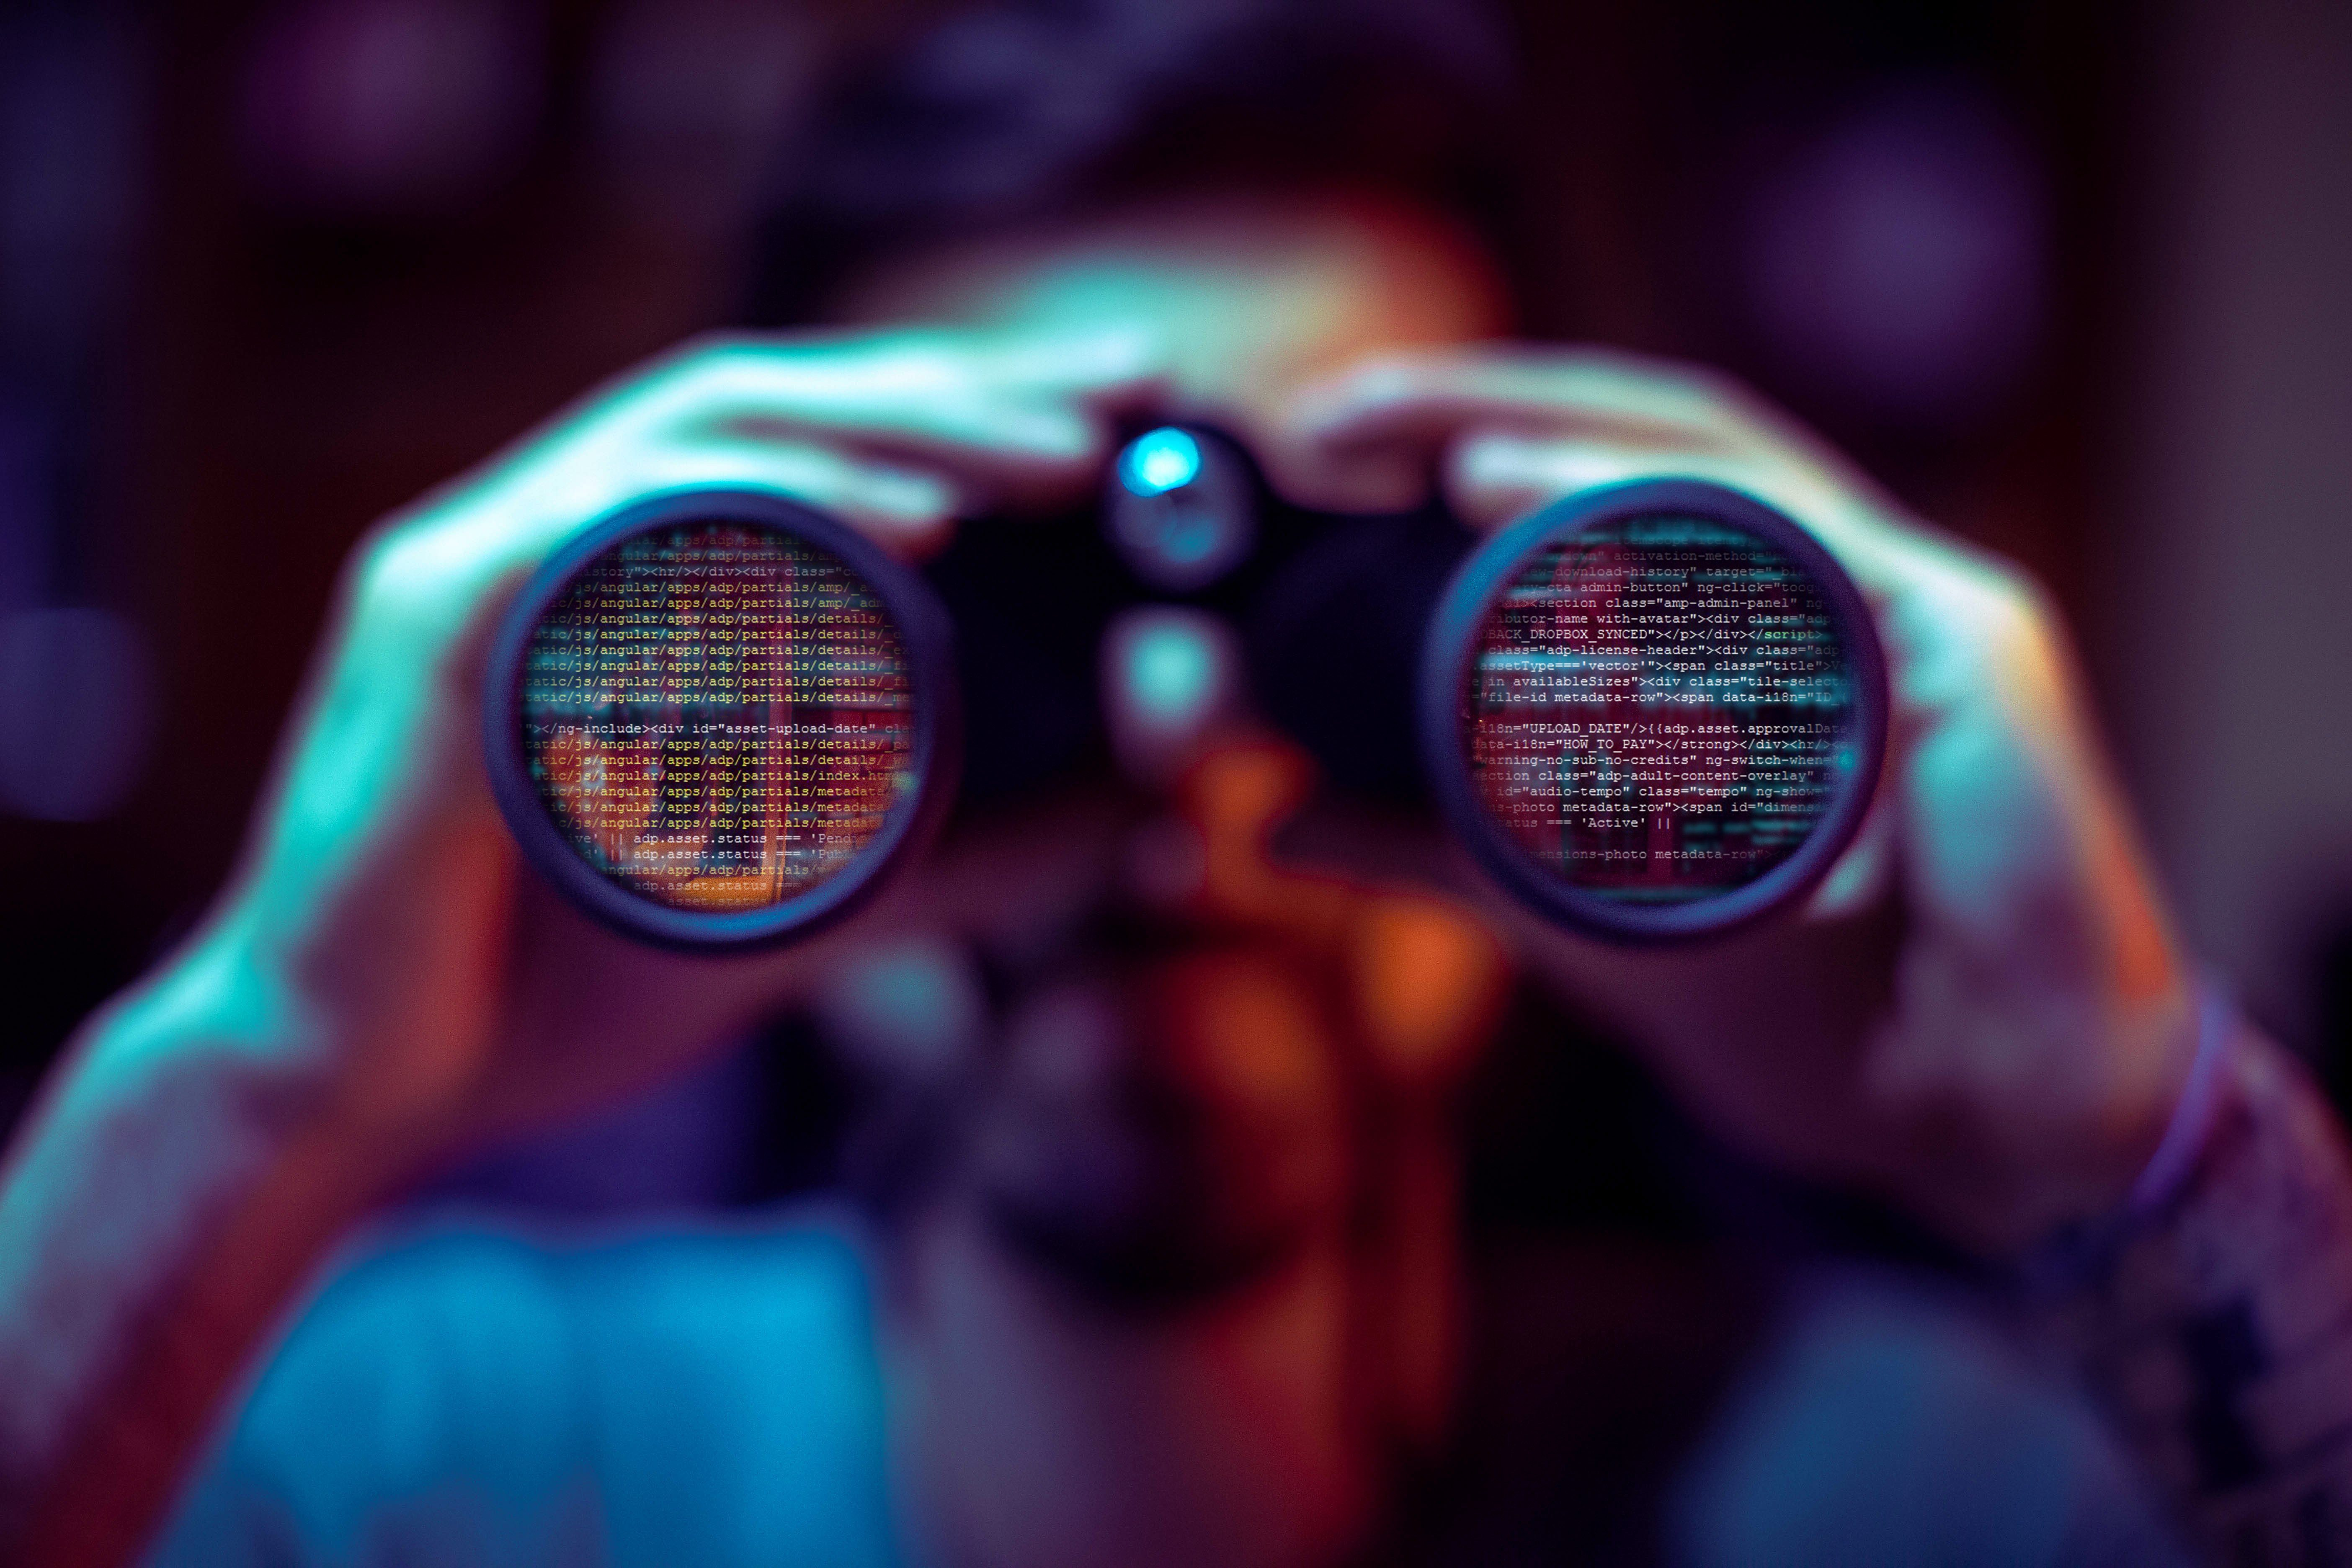 man with binoculars. the binoculars reflect computer code.